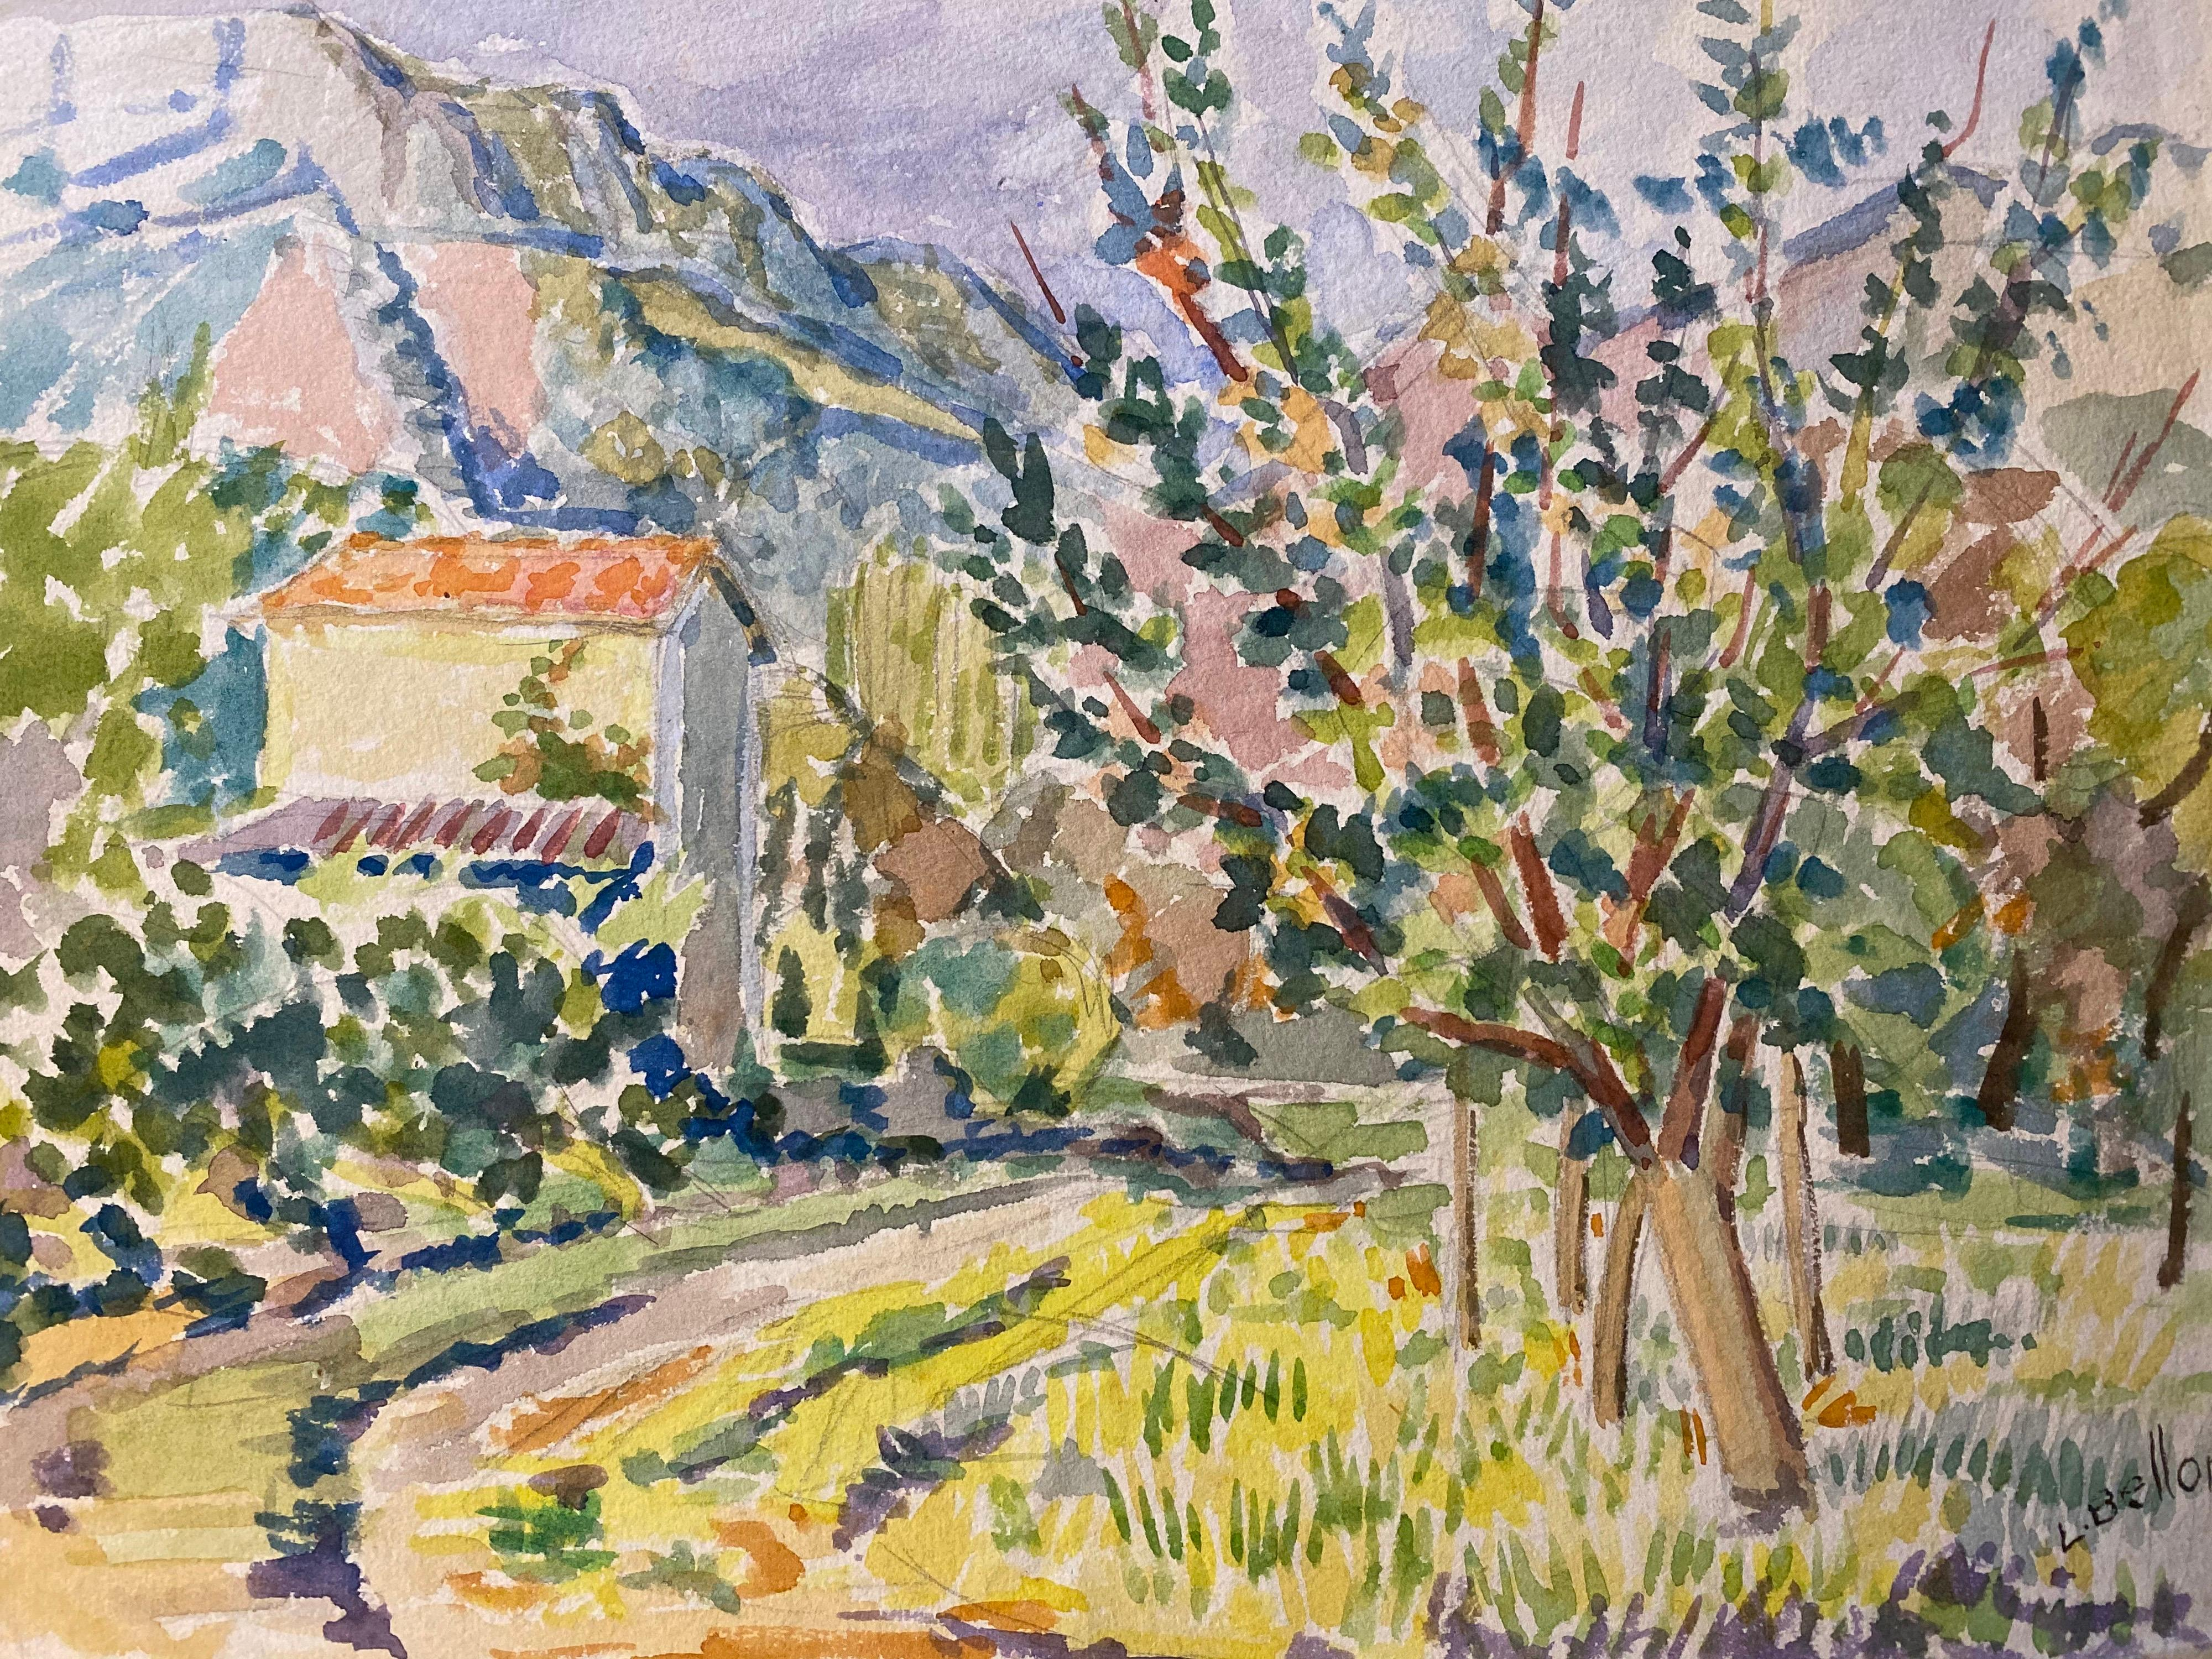 1940's Provence Painting French Colourful Landscape  - Post Impressionist artist